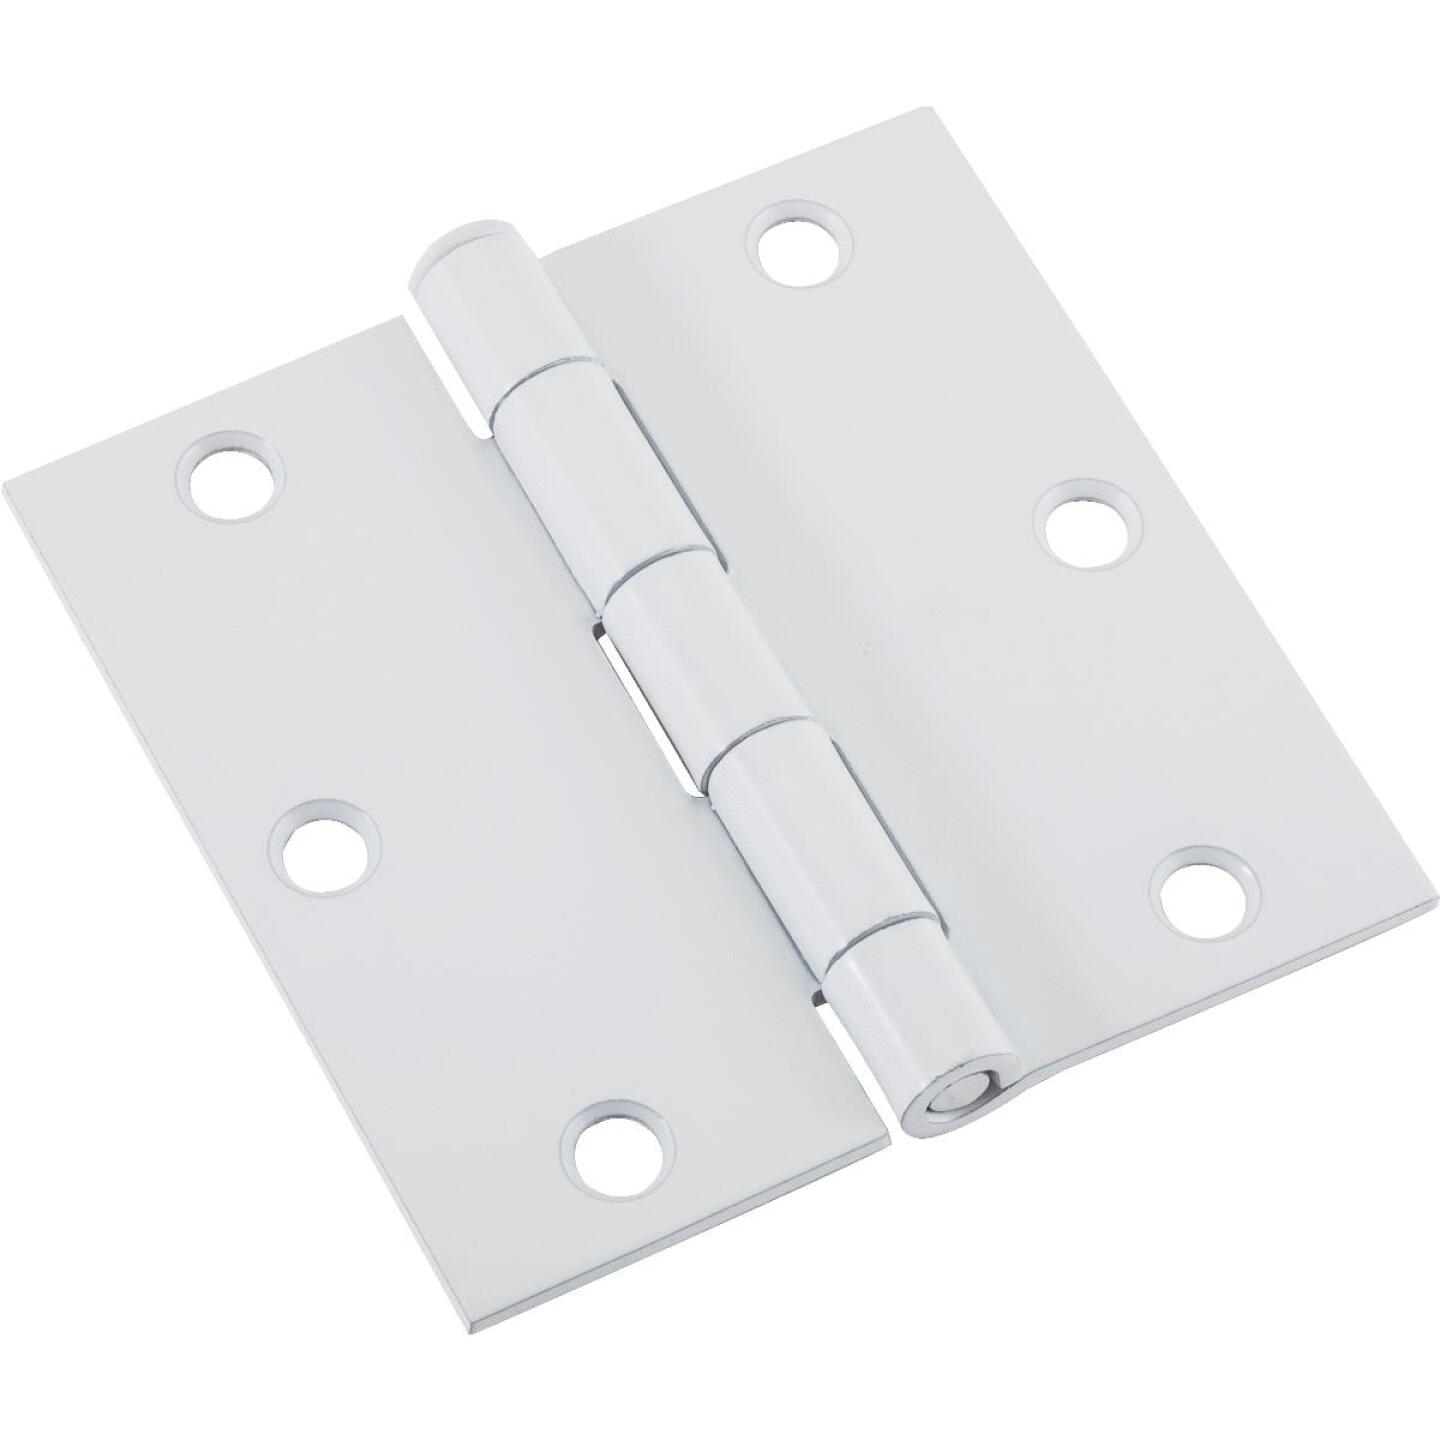 National 3-1/2 In. Square White Door Hinge Image 1